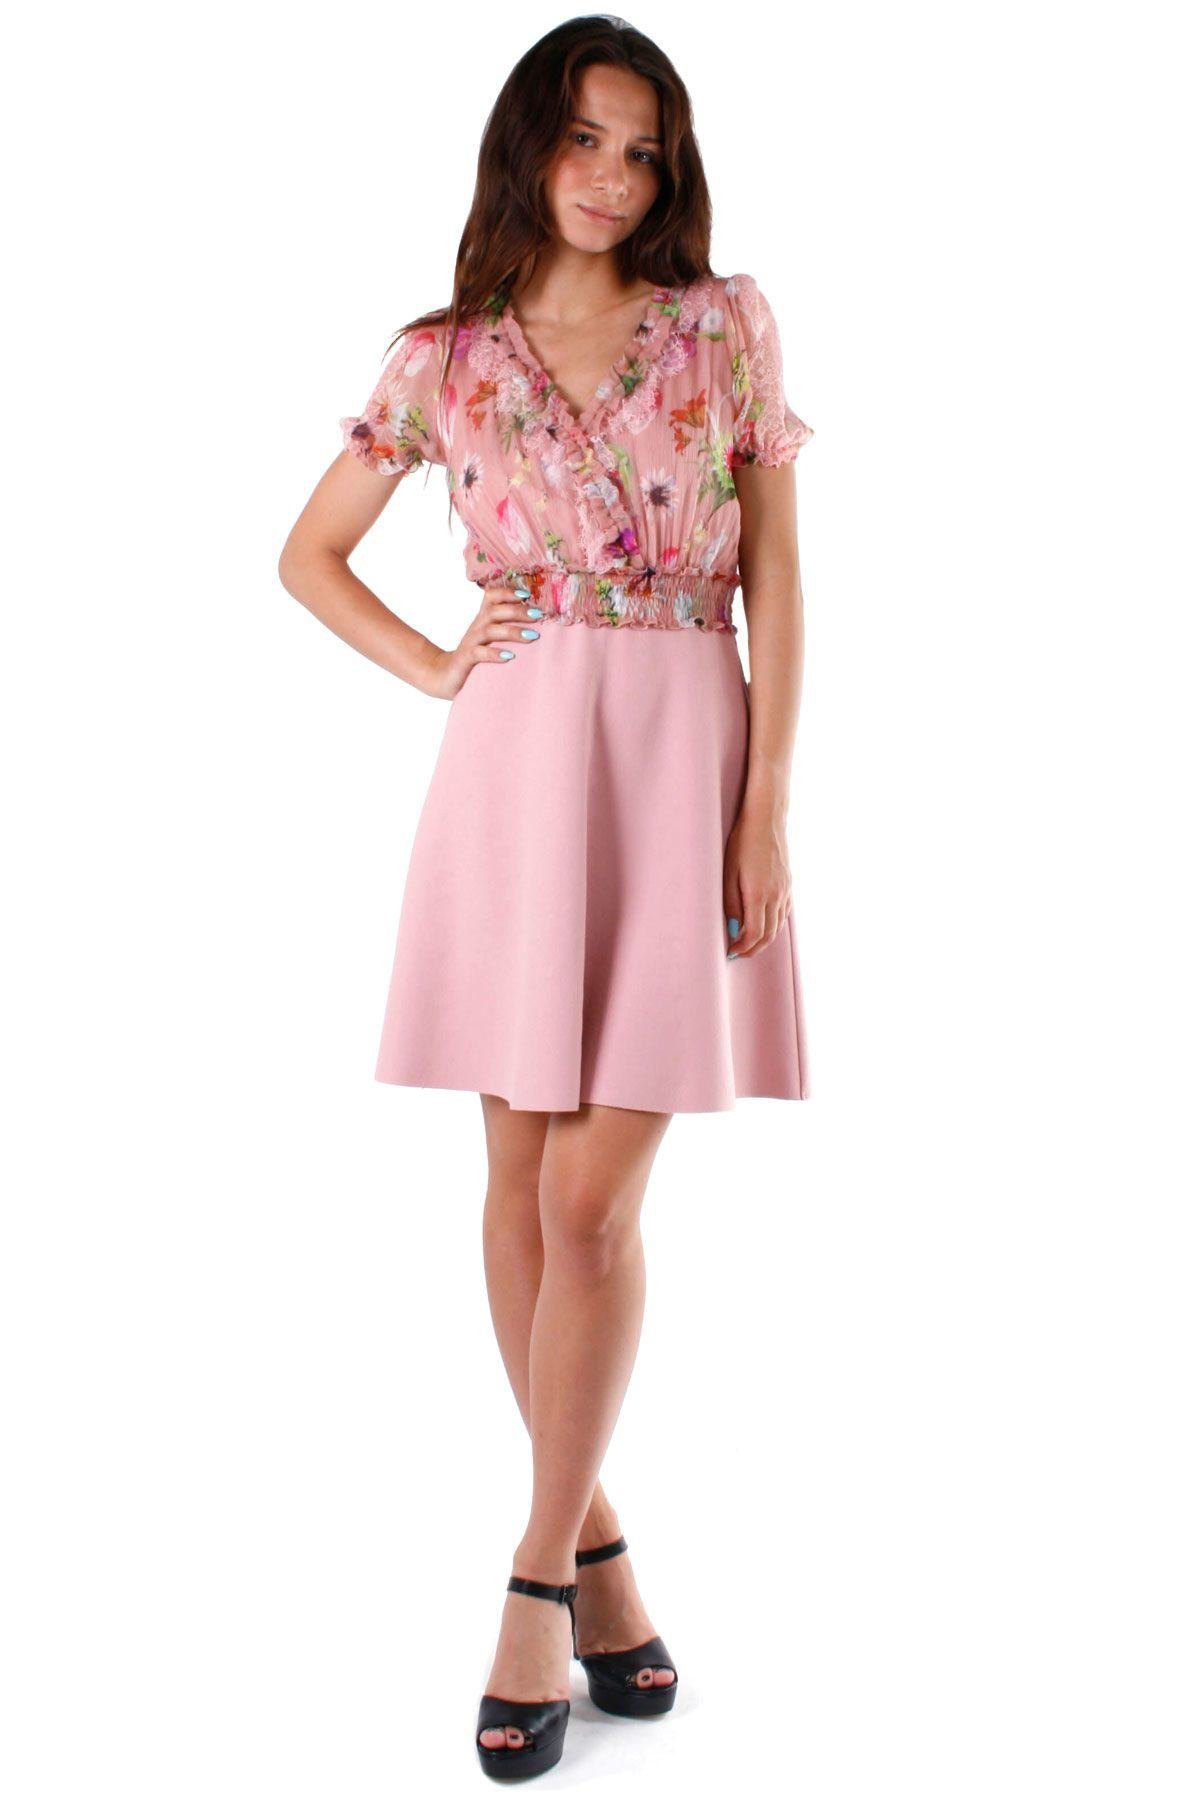 Blumarine Old Rose Floral Dress